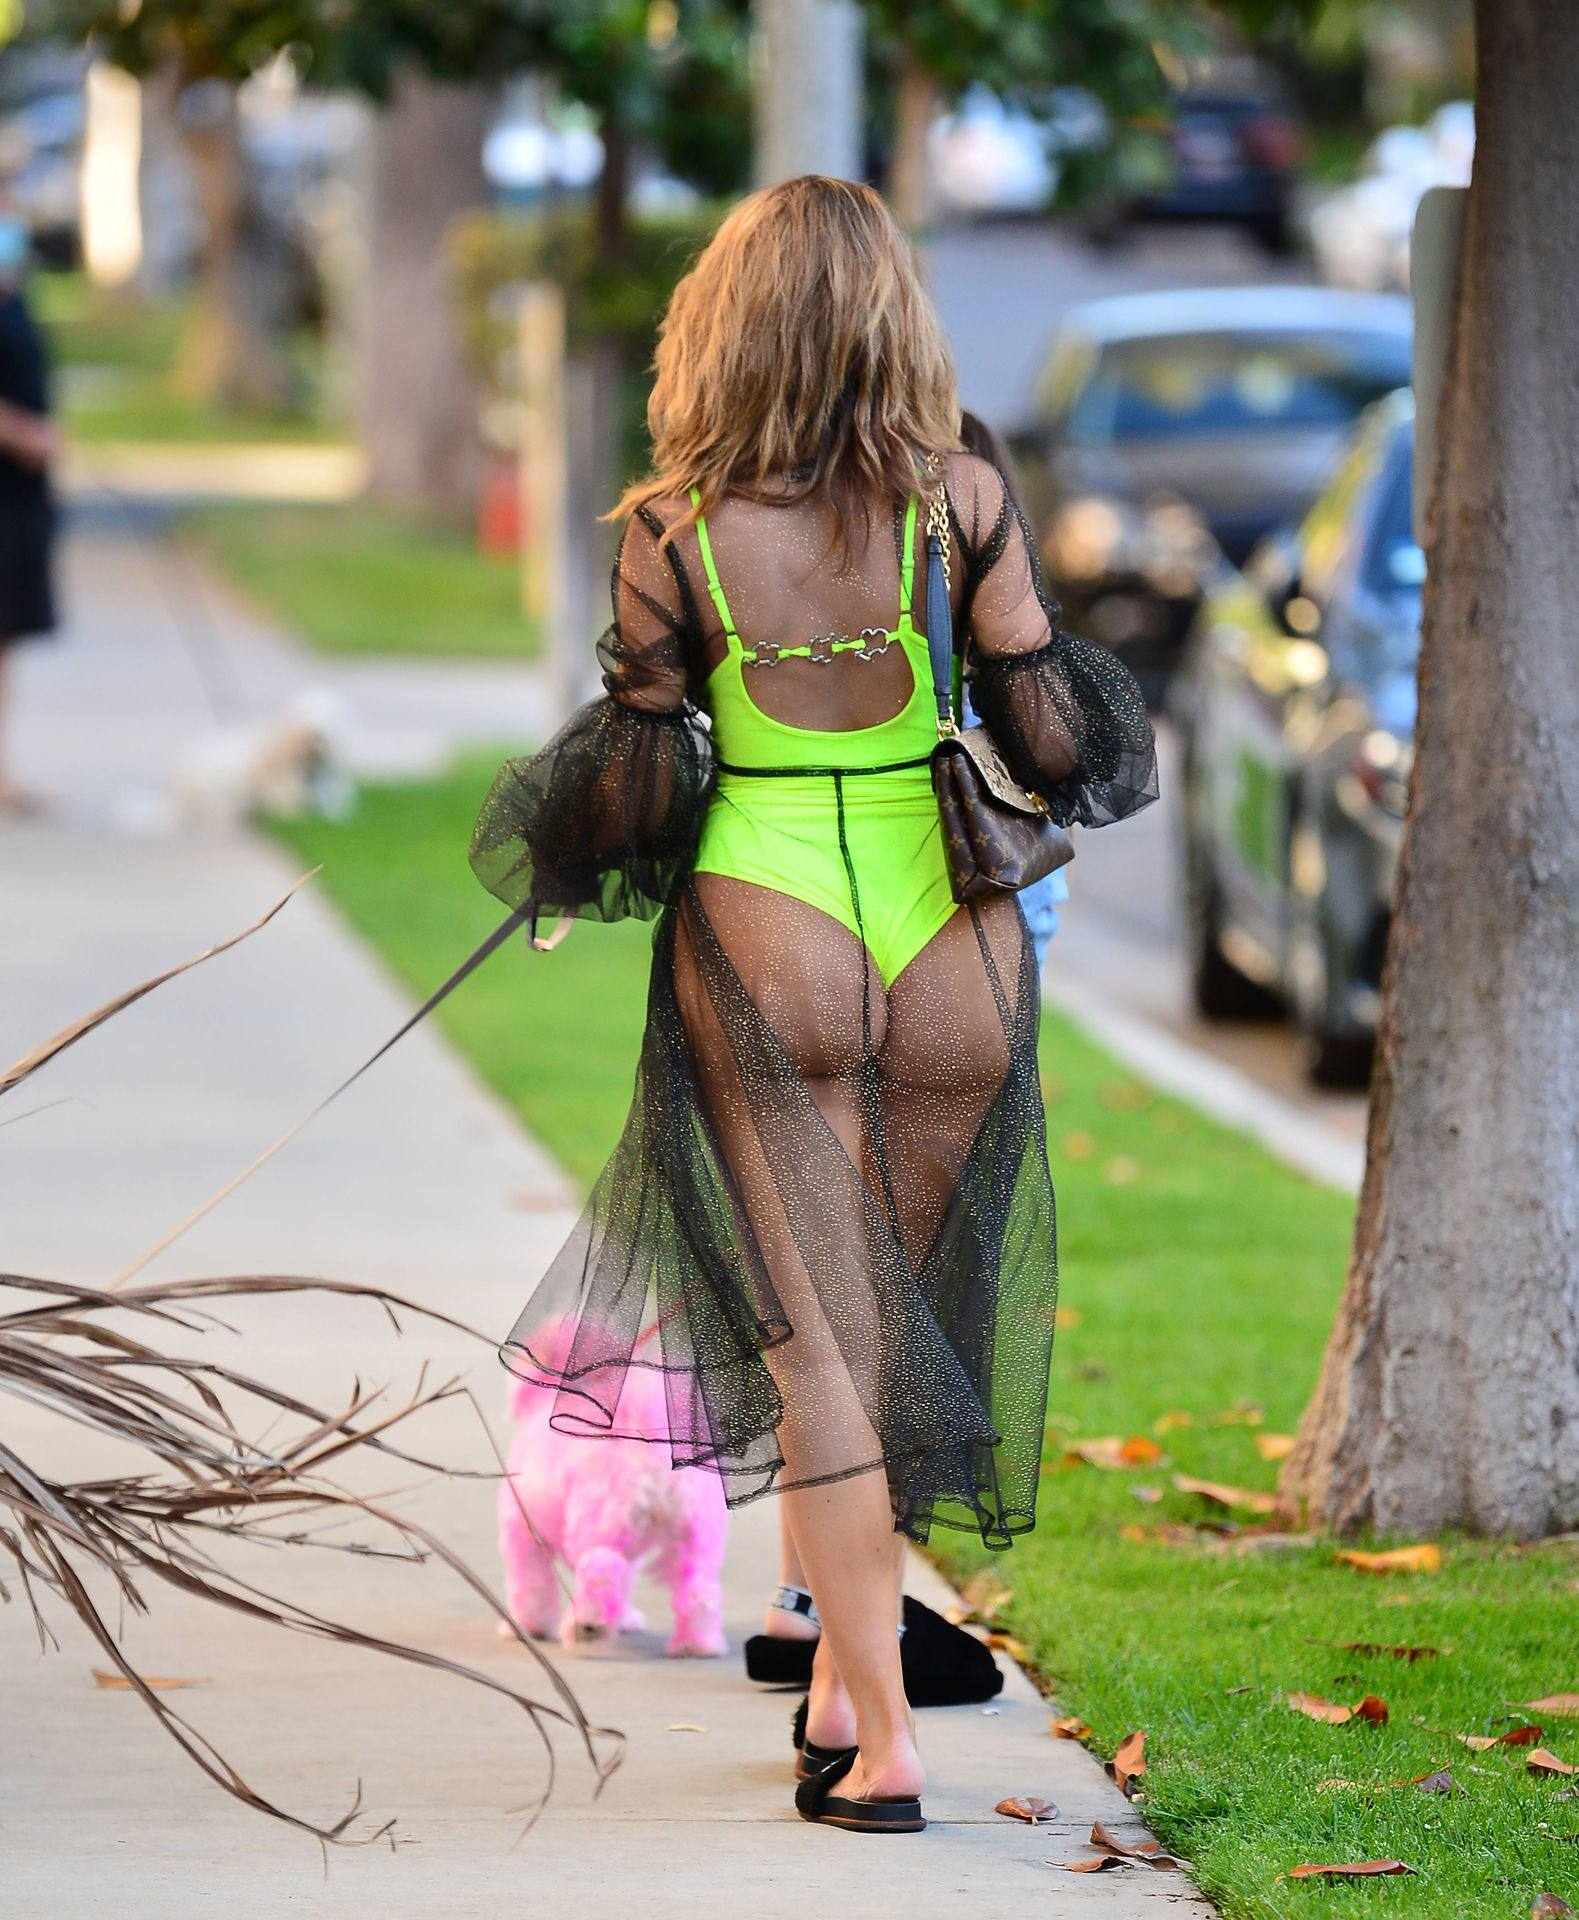 Farrah Abraham – Sexy Big Ass In Neon Green Swimsuit Out In Los Angeles 0006